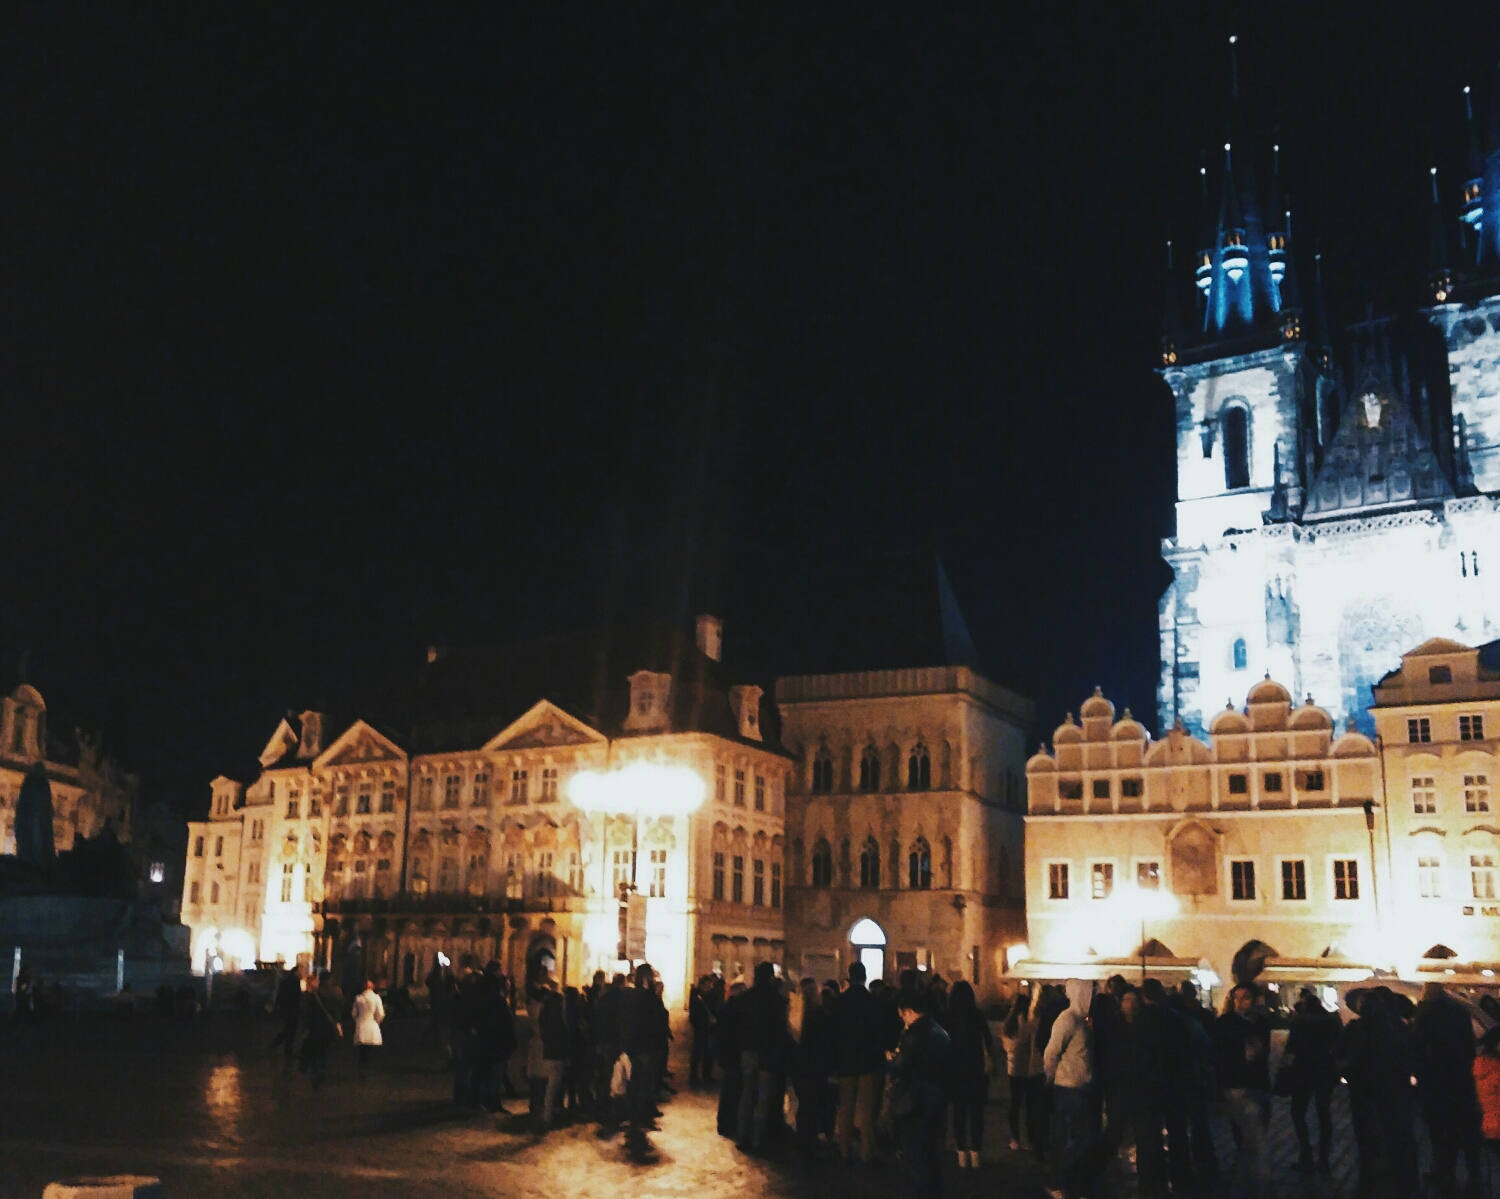 {Old Town Square in all its beauty.}